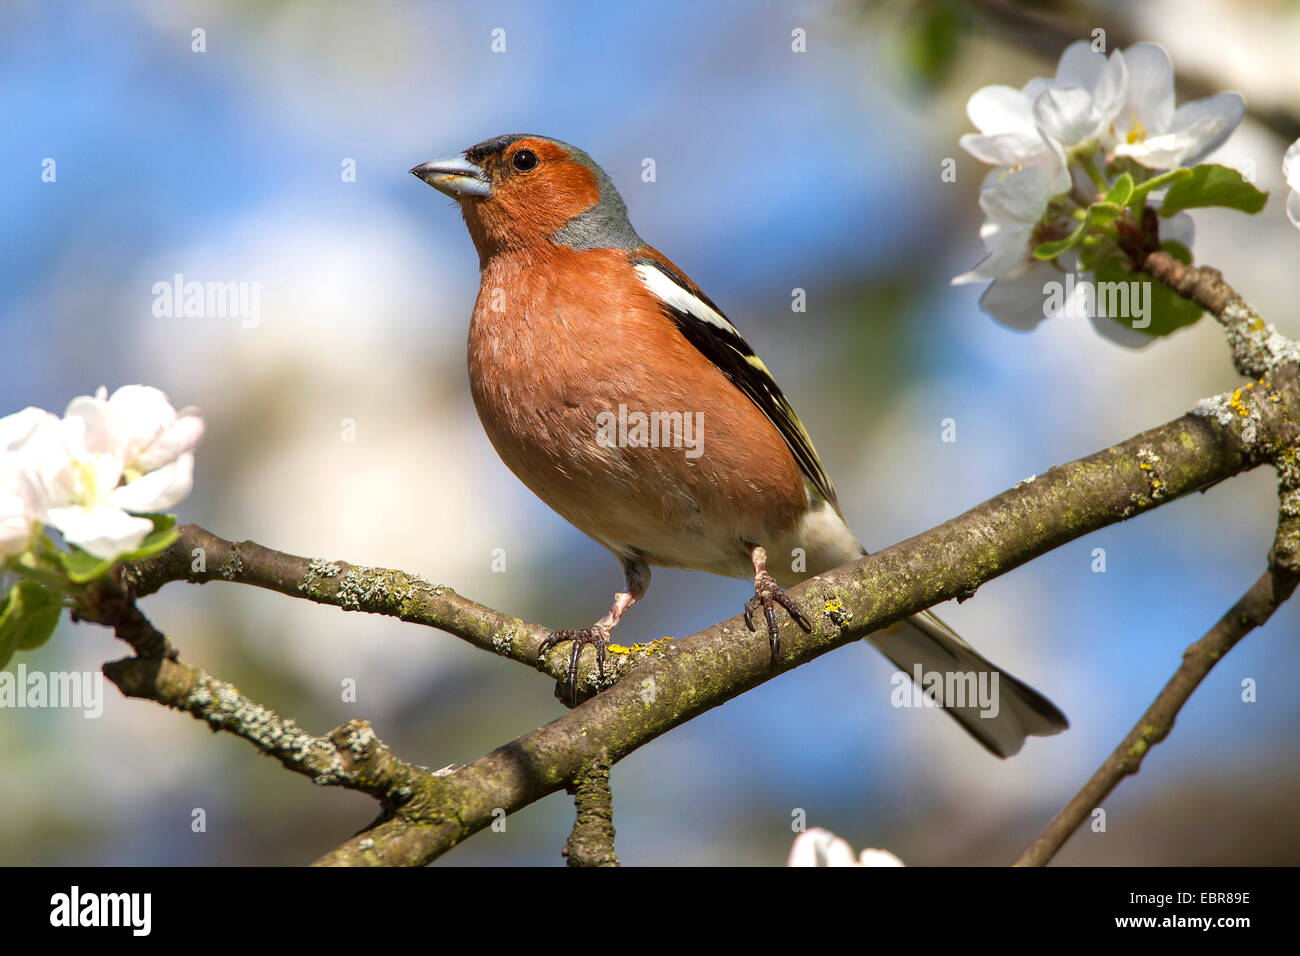 chaffinch (Fringilla coelebs), male on a blooming branch, Germany - Stock Image